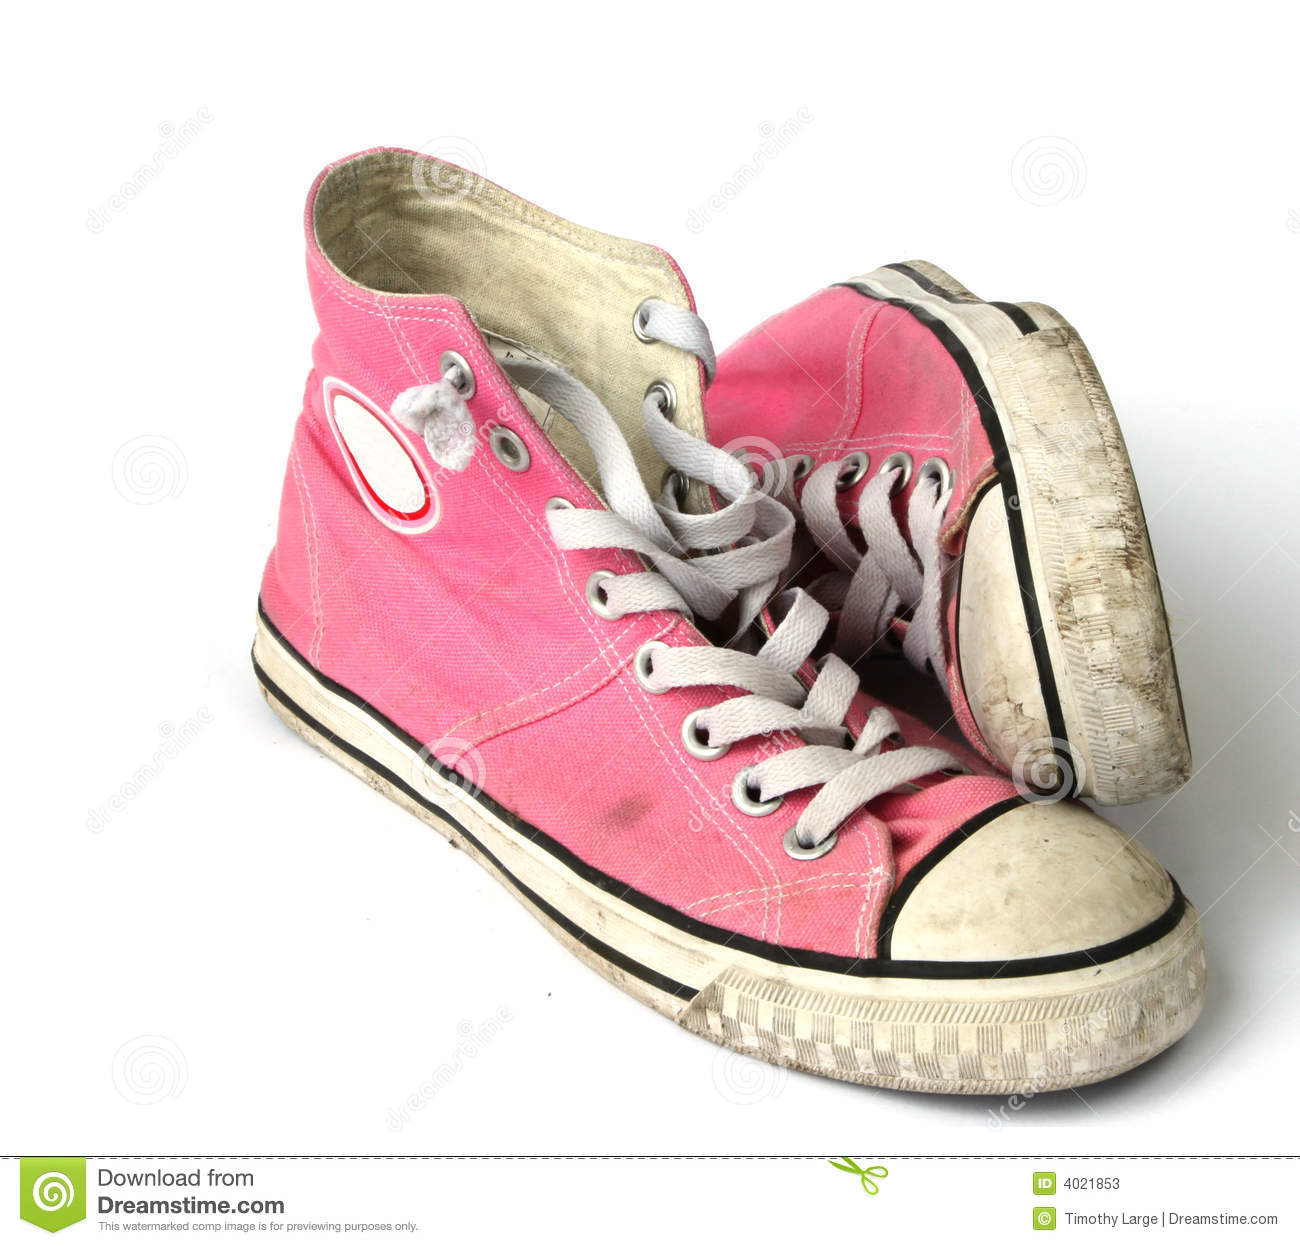 Free shipping and returns on Girls' Pink Shoes at dvlnpxiuf.ga